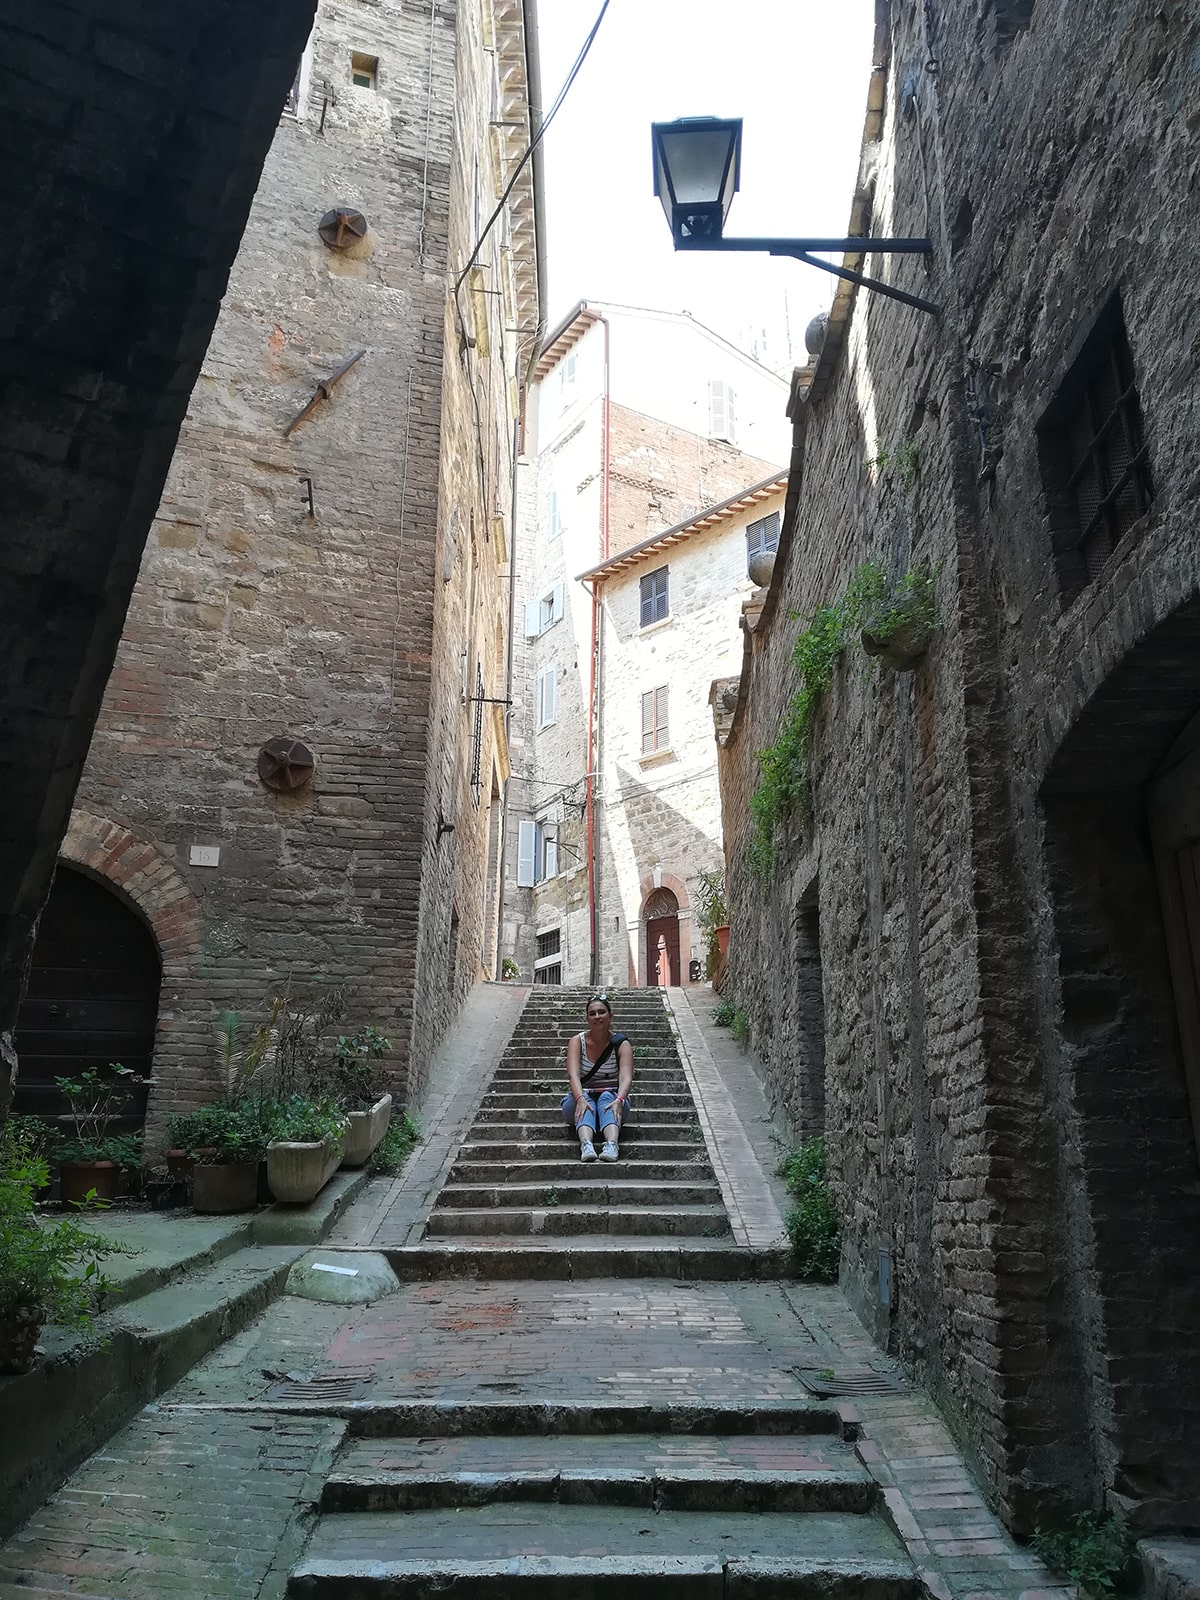 Marianna in a staircase, Perugia